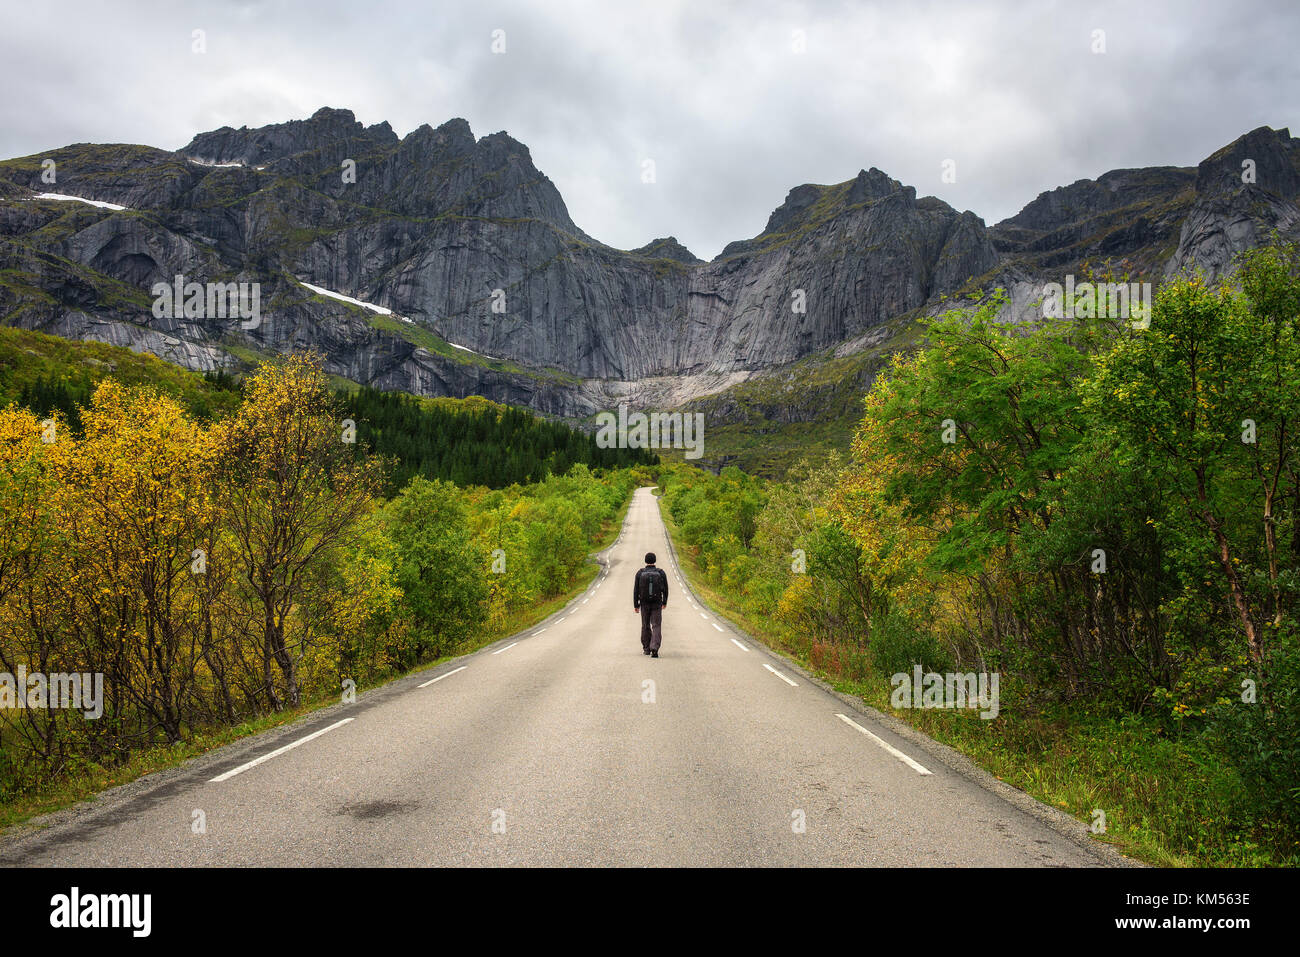 Hiker walks on a scenic road on Lofoten islands in Norway - Stock Image